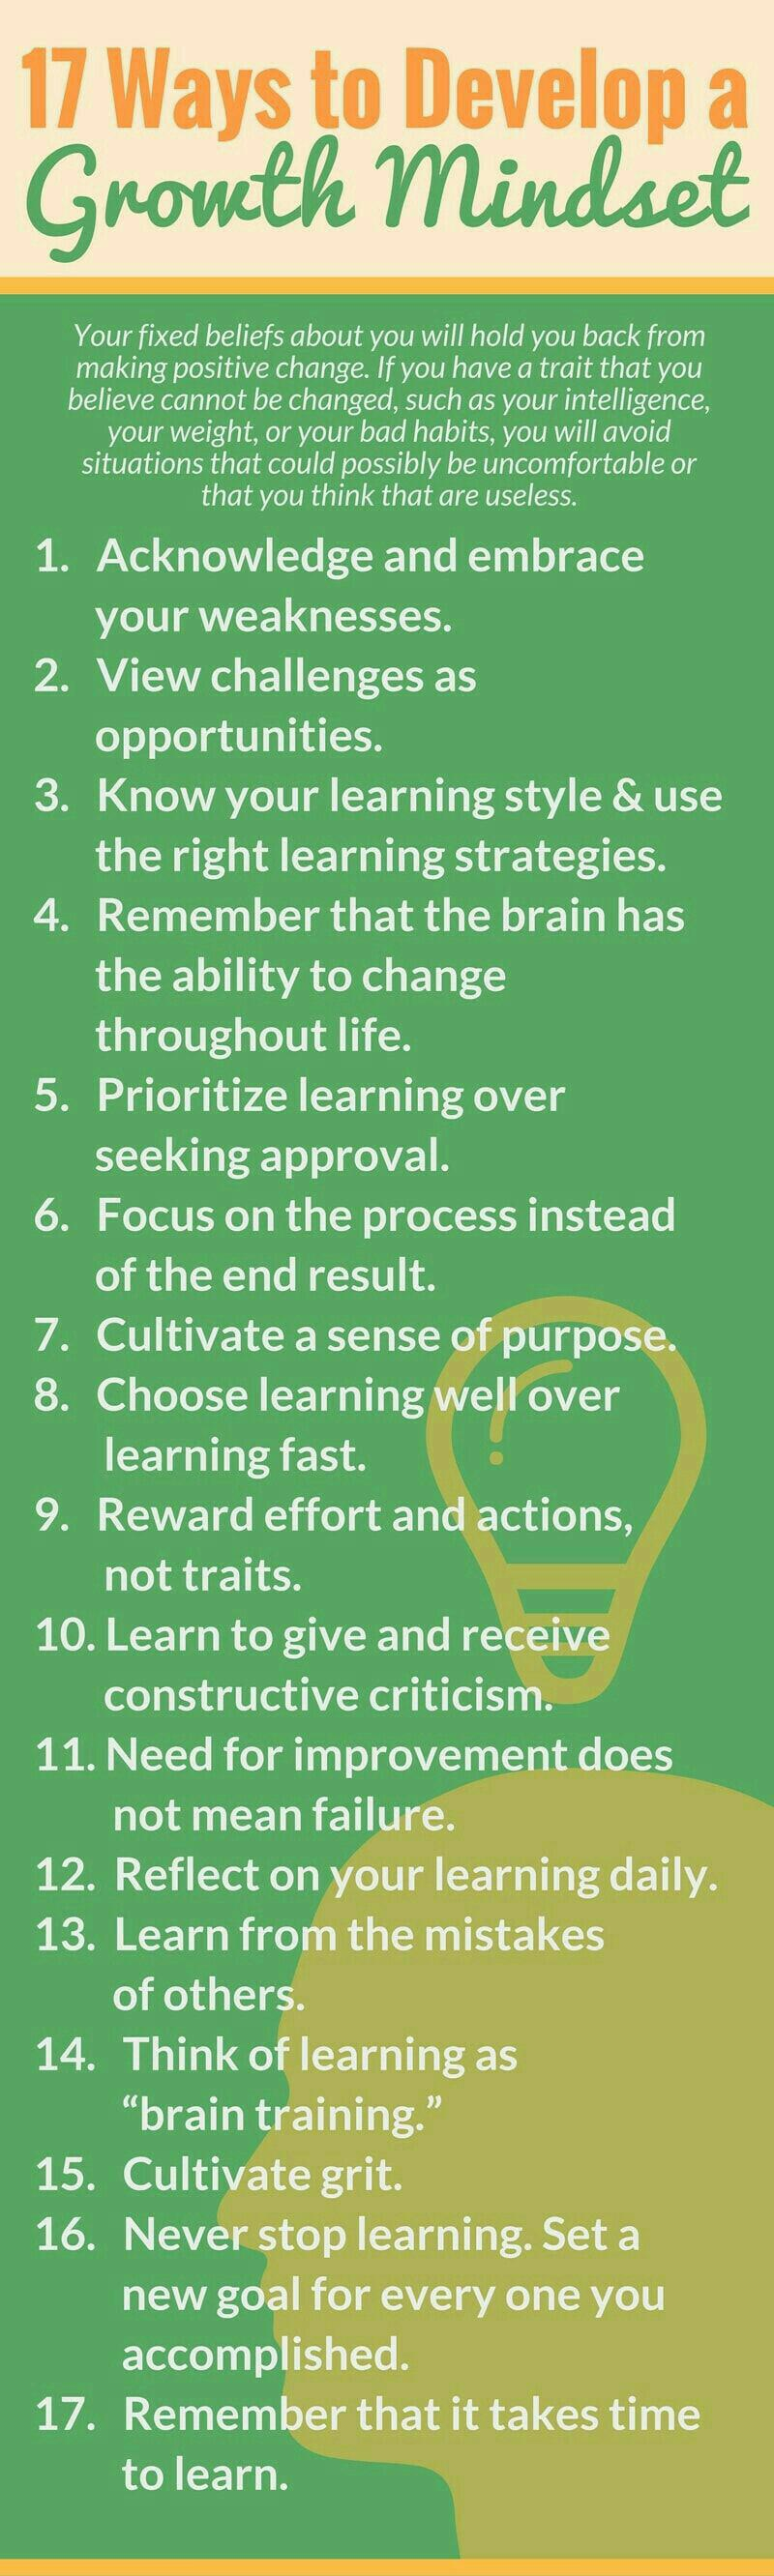 [image] 17 Ways To Develop A Growth Mindset